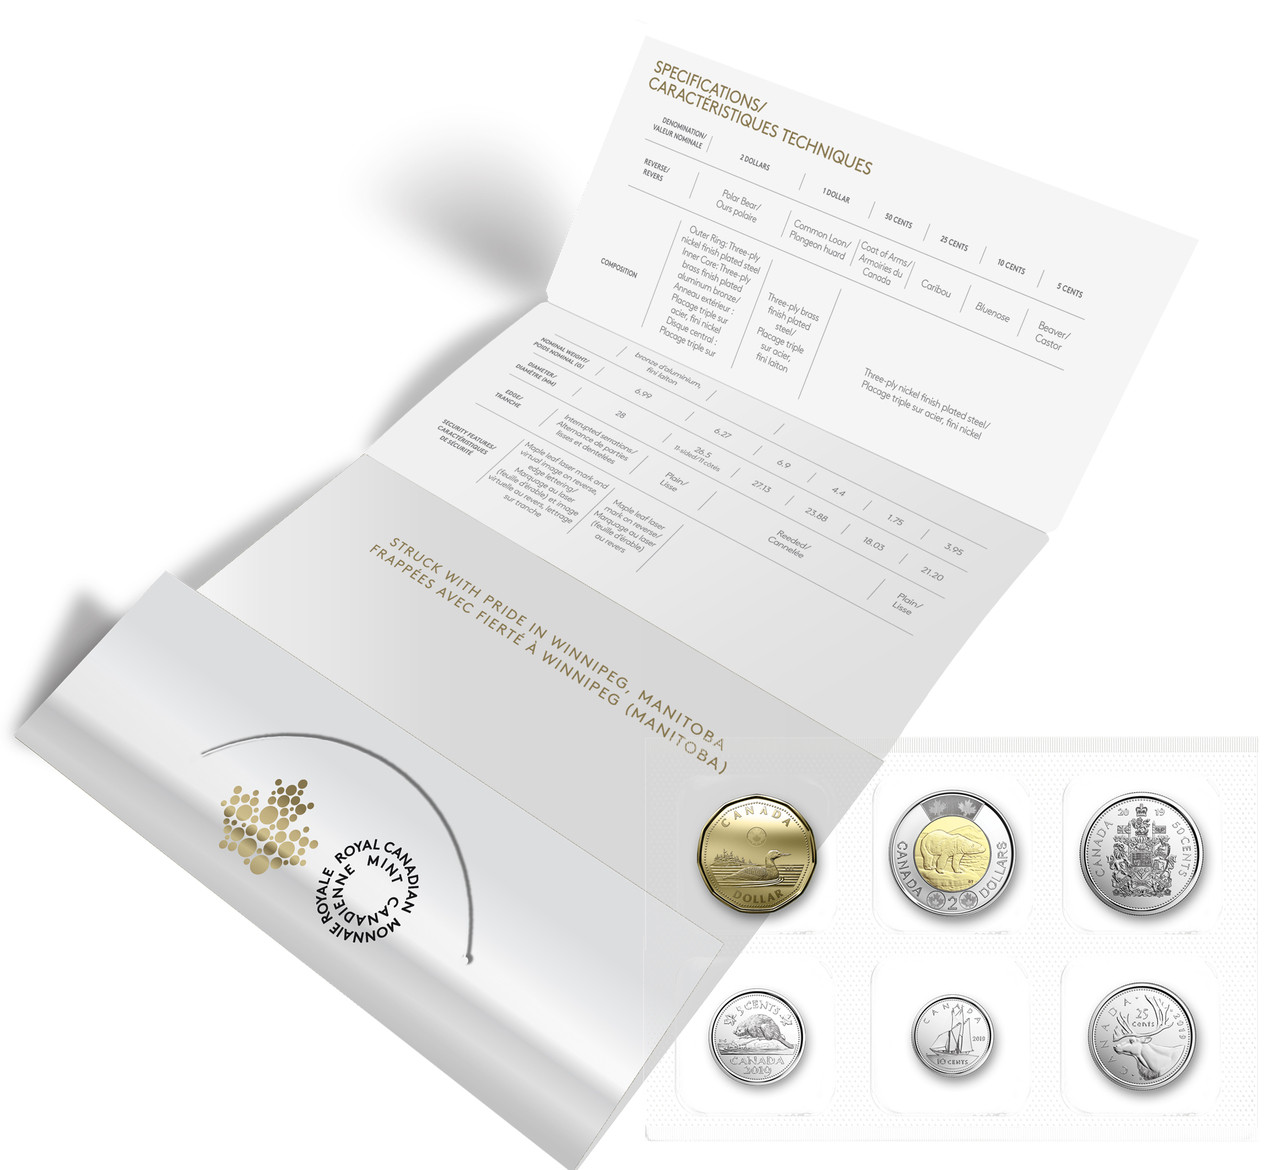 1983 Canada Uncirculated Coin Collection 6 Coin Set 1 Cent To One Dollar Royal Available In Various Designs And Specifications For Your Selection Coins